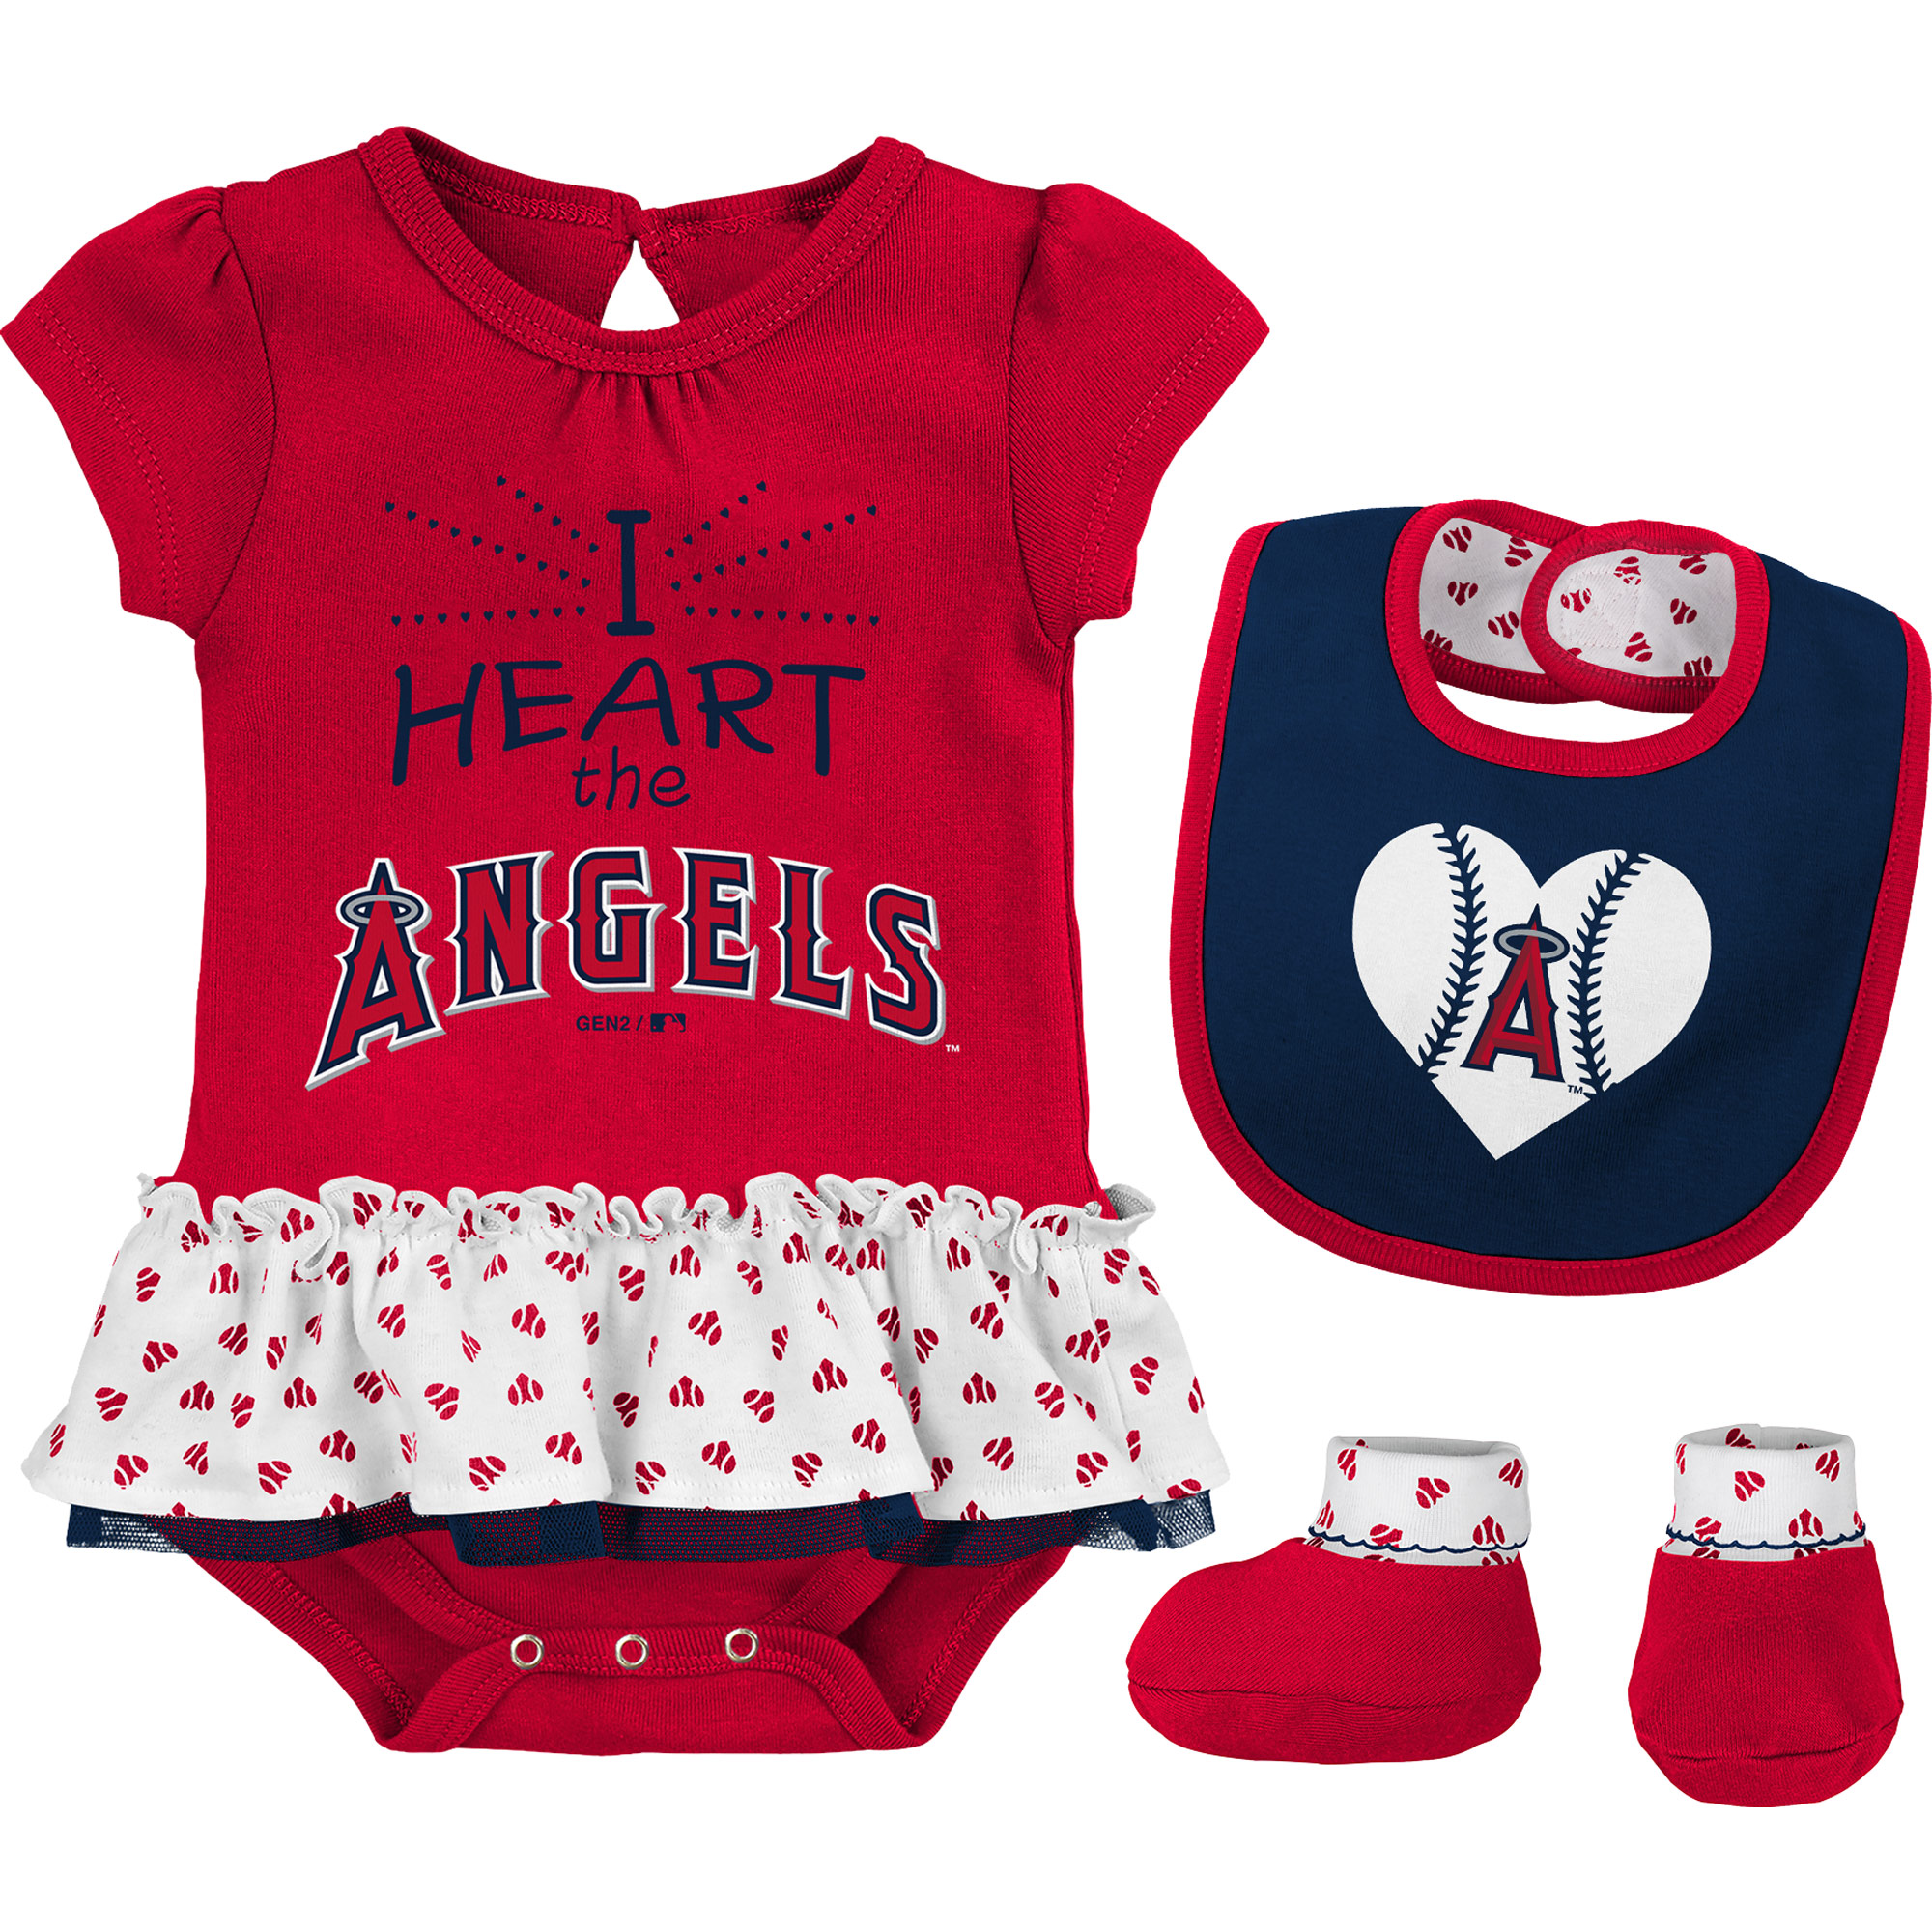 Los Angeles Angels Girls Infant Bodysuit, Bib And Booty Set - Red/Navy